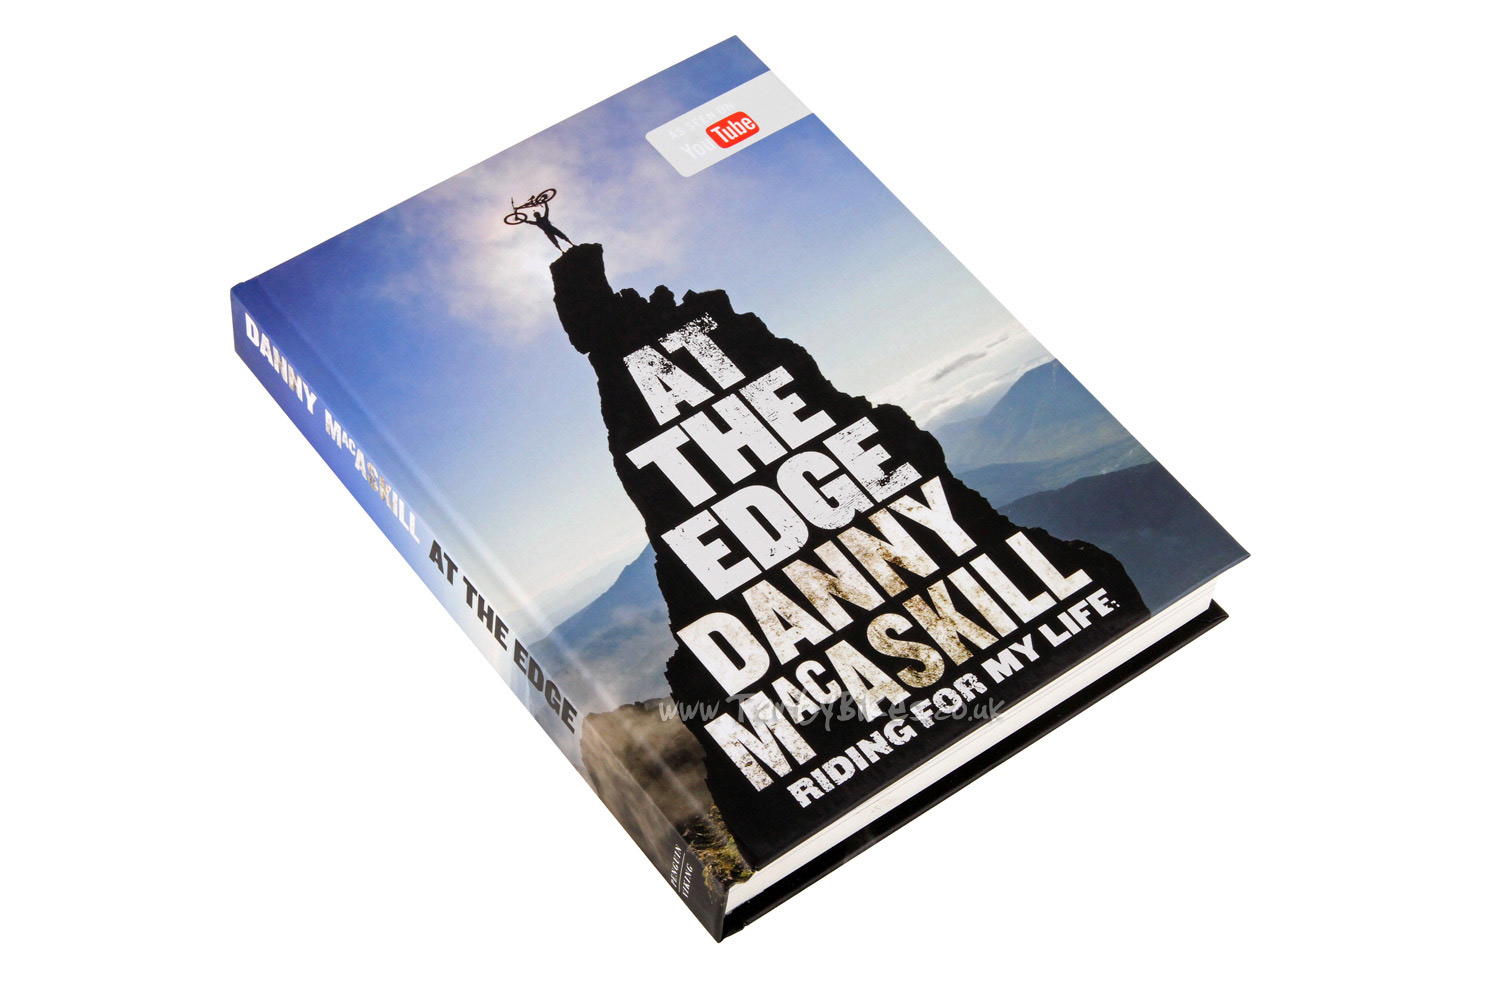 Danny MacAskill: At The Edge - Riding For My Life